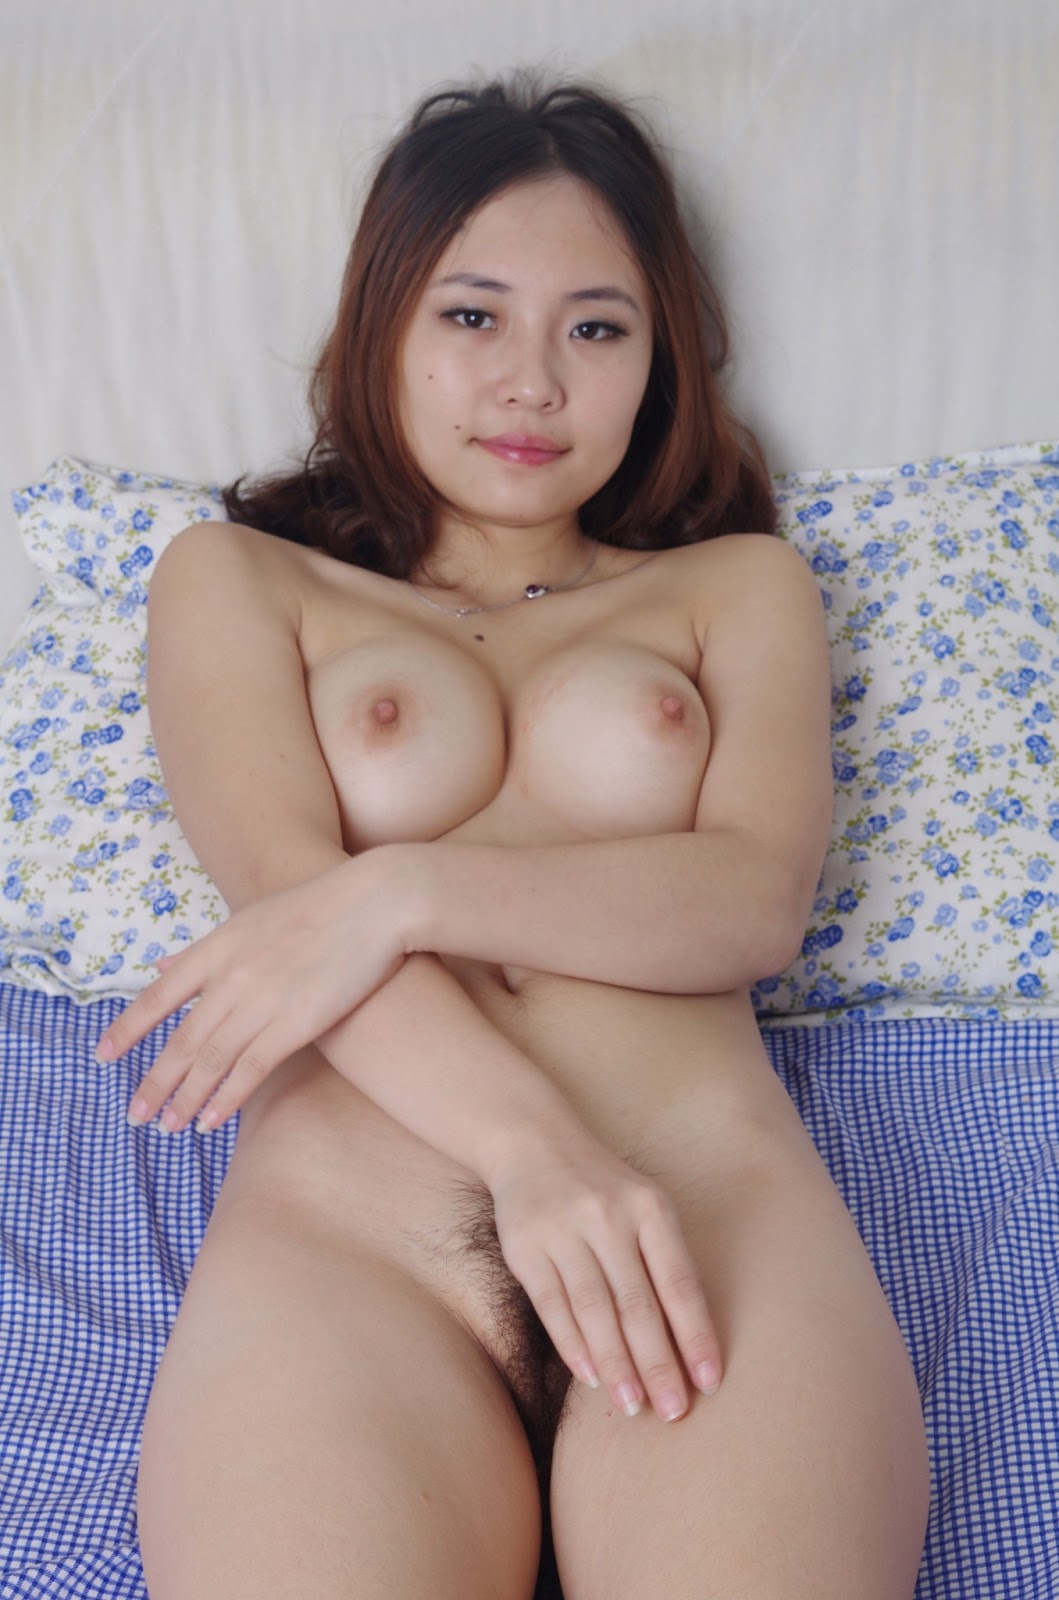 Fad 30 Cute Asian Nude Girl-6450